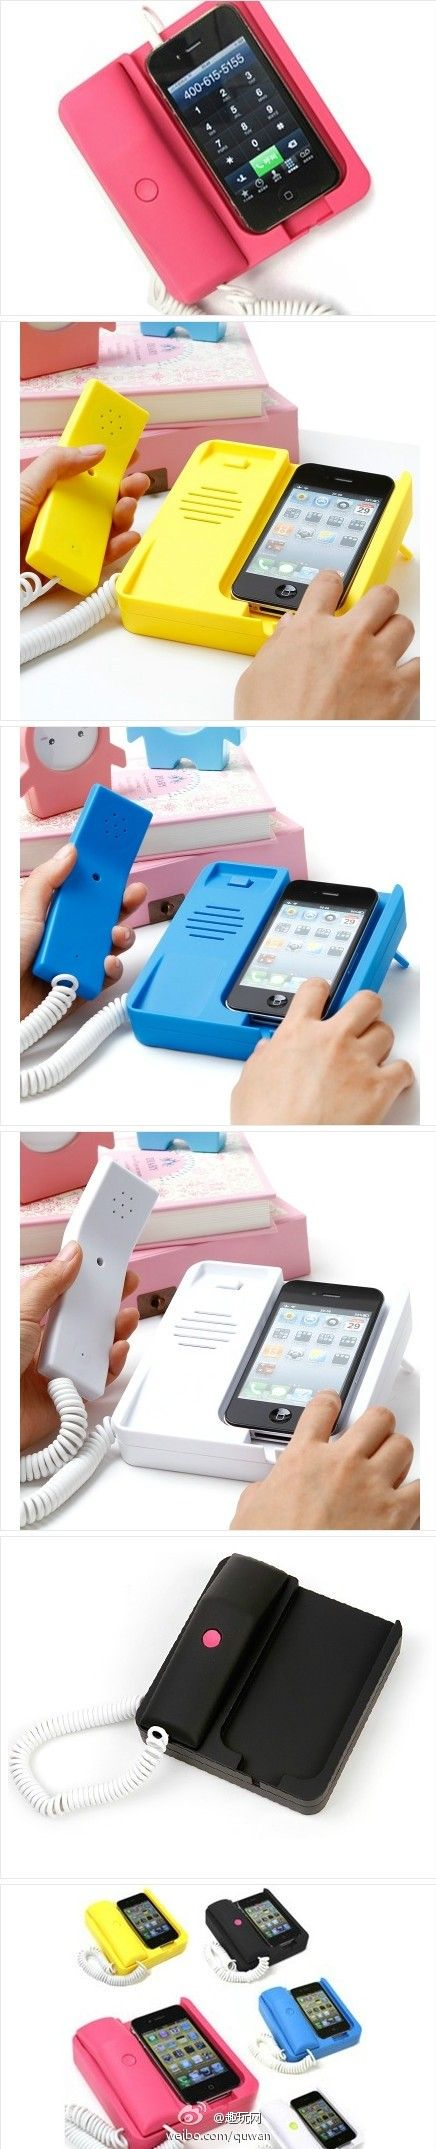 iPhone Accessory need for Evan & myself, I always press my cheek to screen when having long conversations